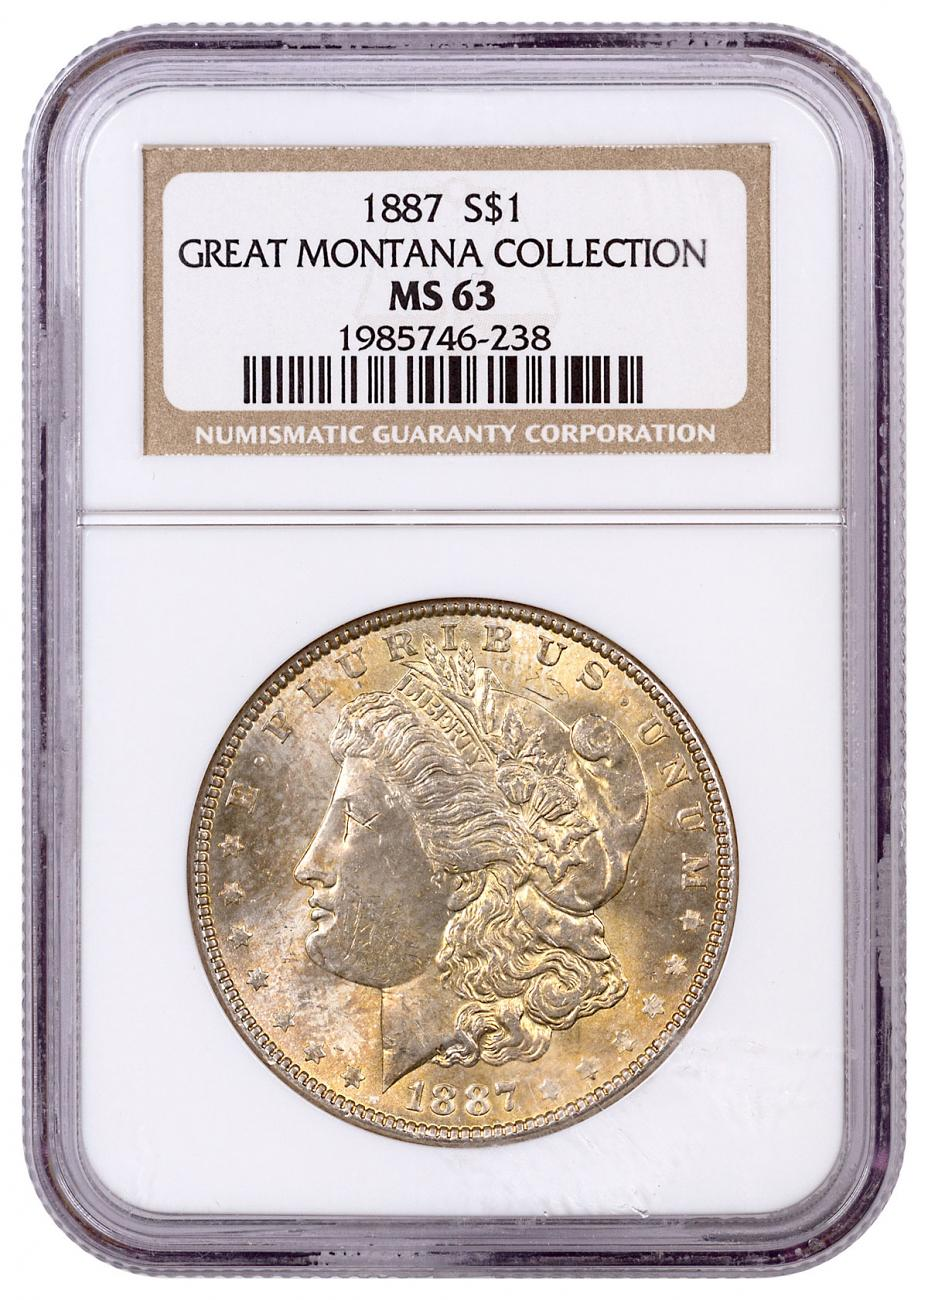 1887 Morgan Silver Dollar From the Great Montana Collection NGC MS63 Toned CPCR 238